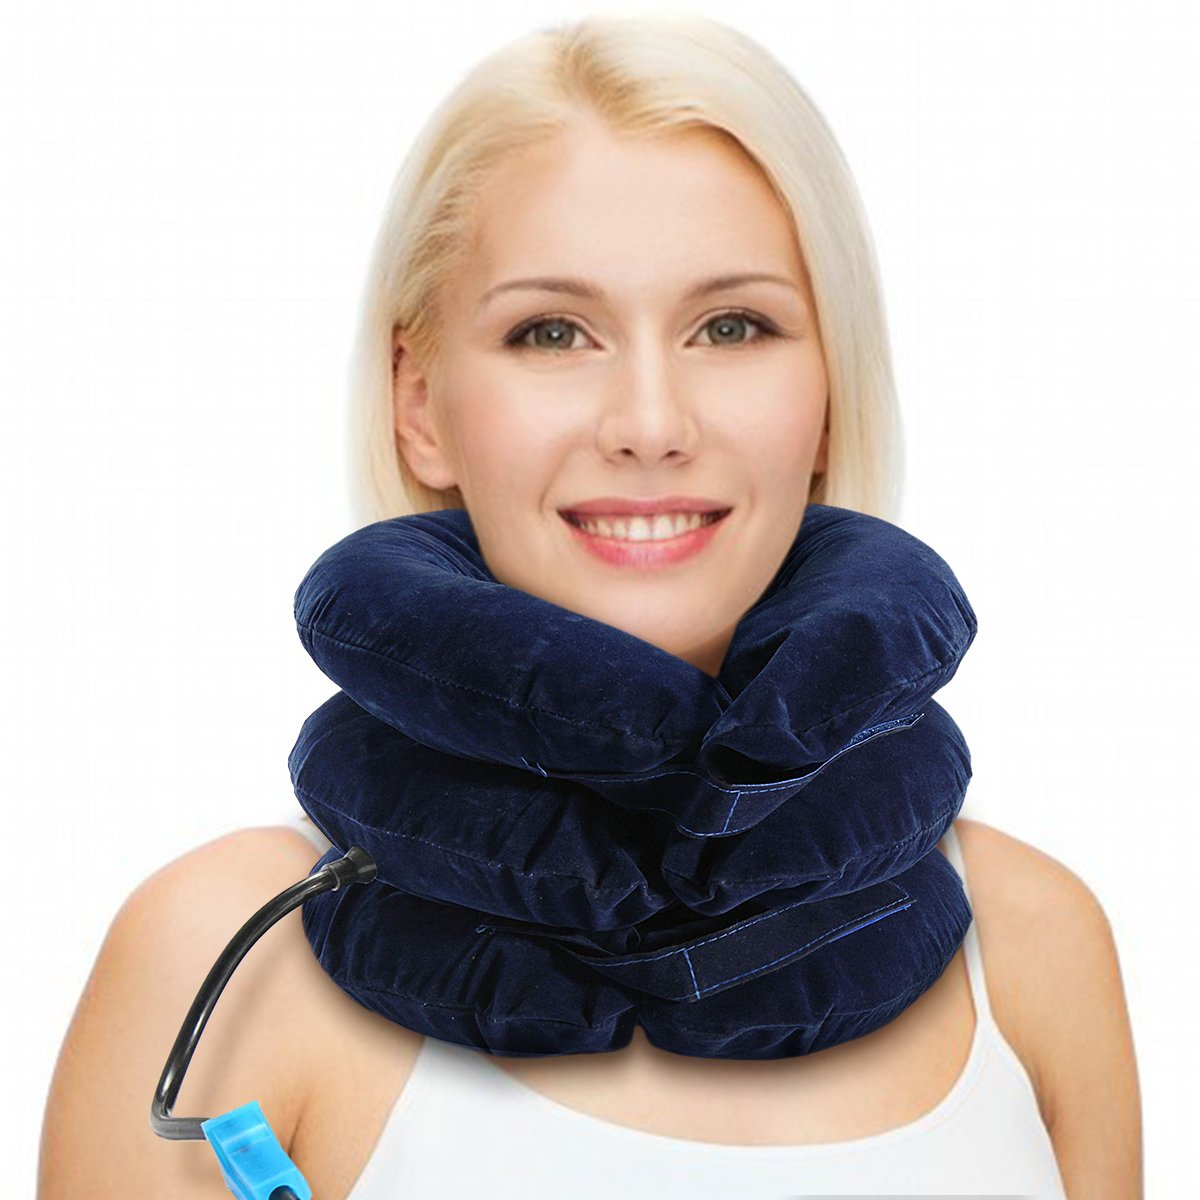 Air Inflatable Pillow Cervical Neck Headache Pain Traction Support Brace Device Blue by Essort (Image #1)